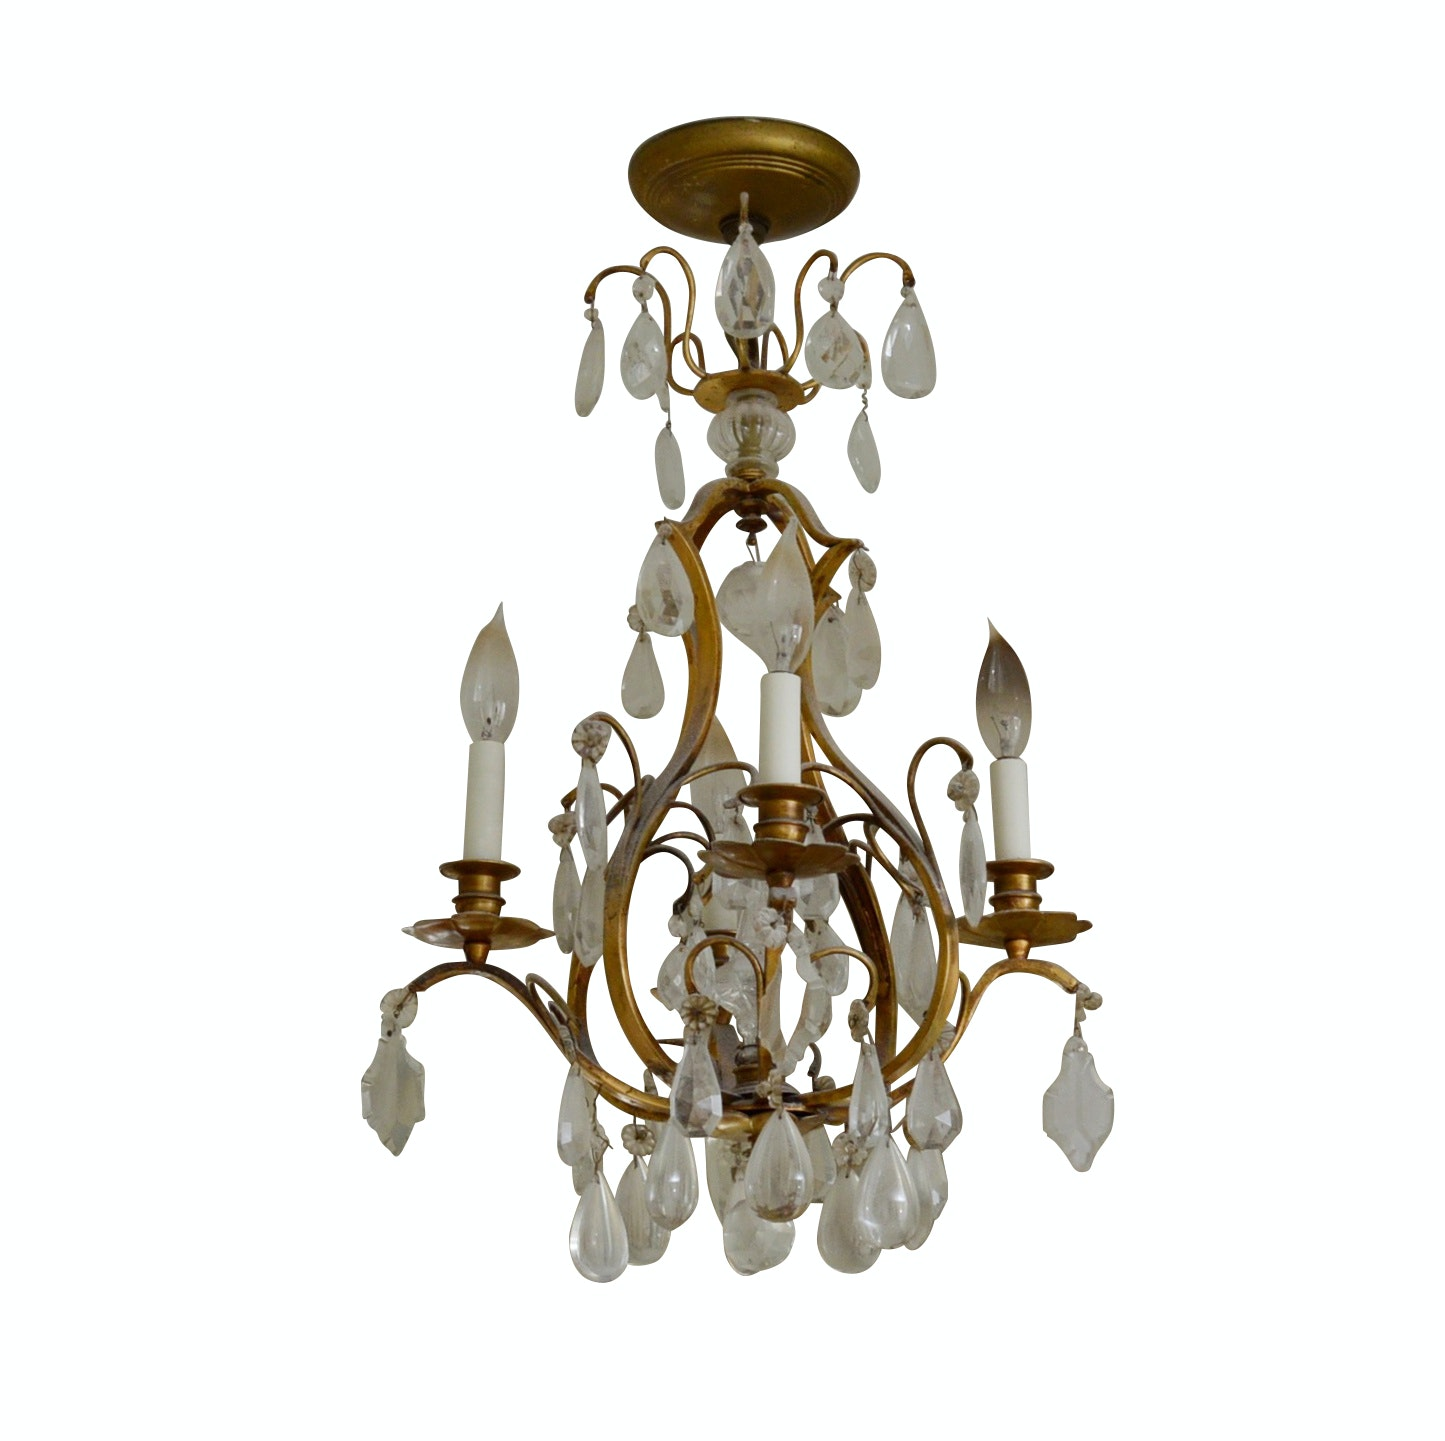 French Style Metal Chandelier with Glass Prisms Drops